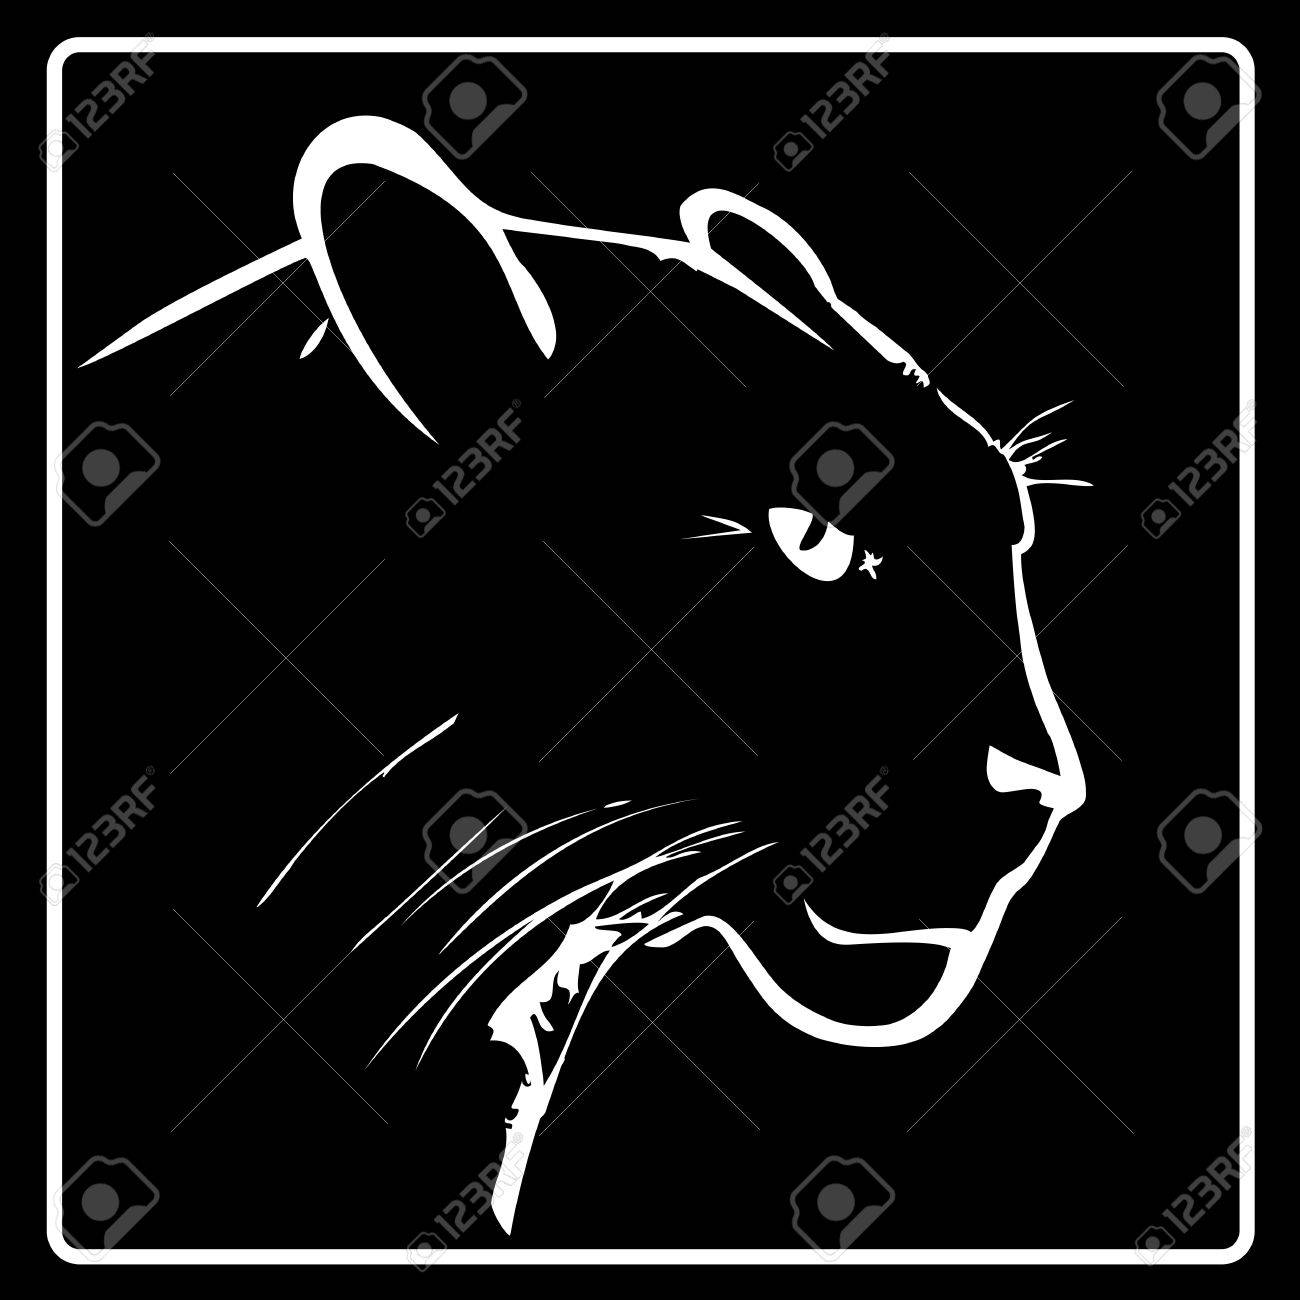 Black Panther Background Panther on a Black Background